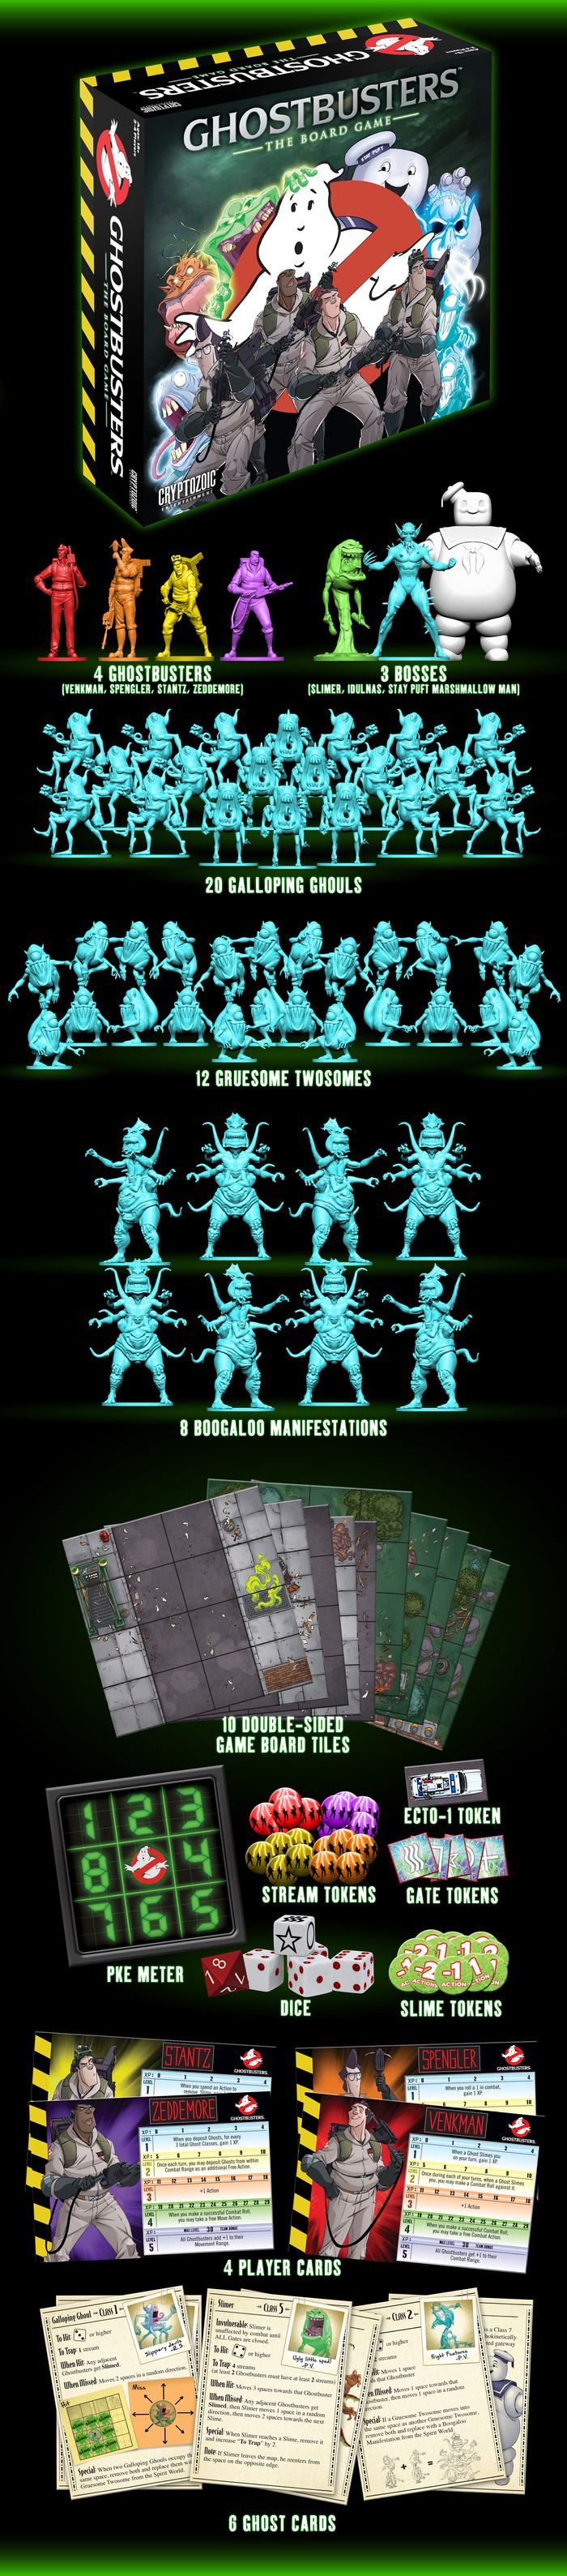 Ghostbusters: The Board Game by Cryptozoic Entertainment — Kickstarter